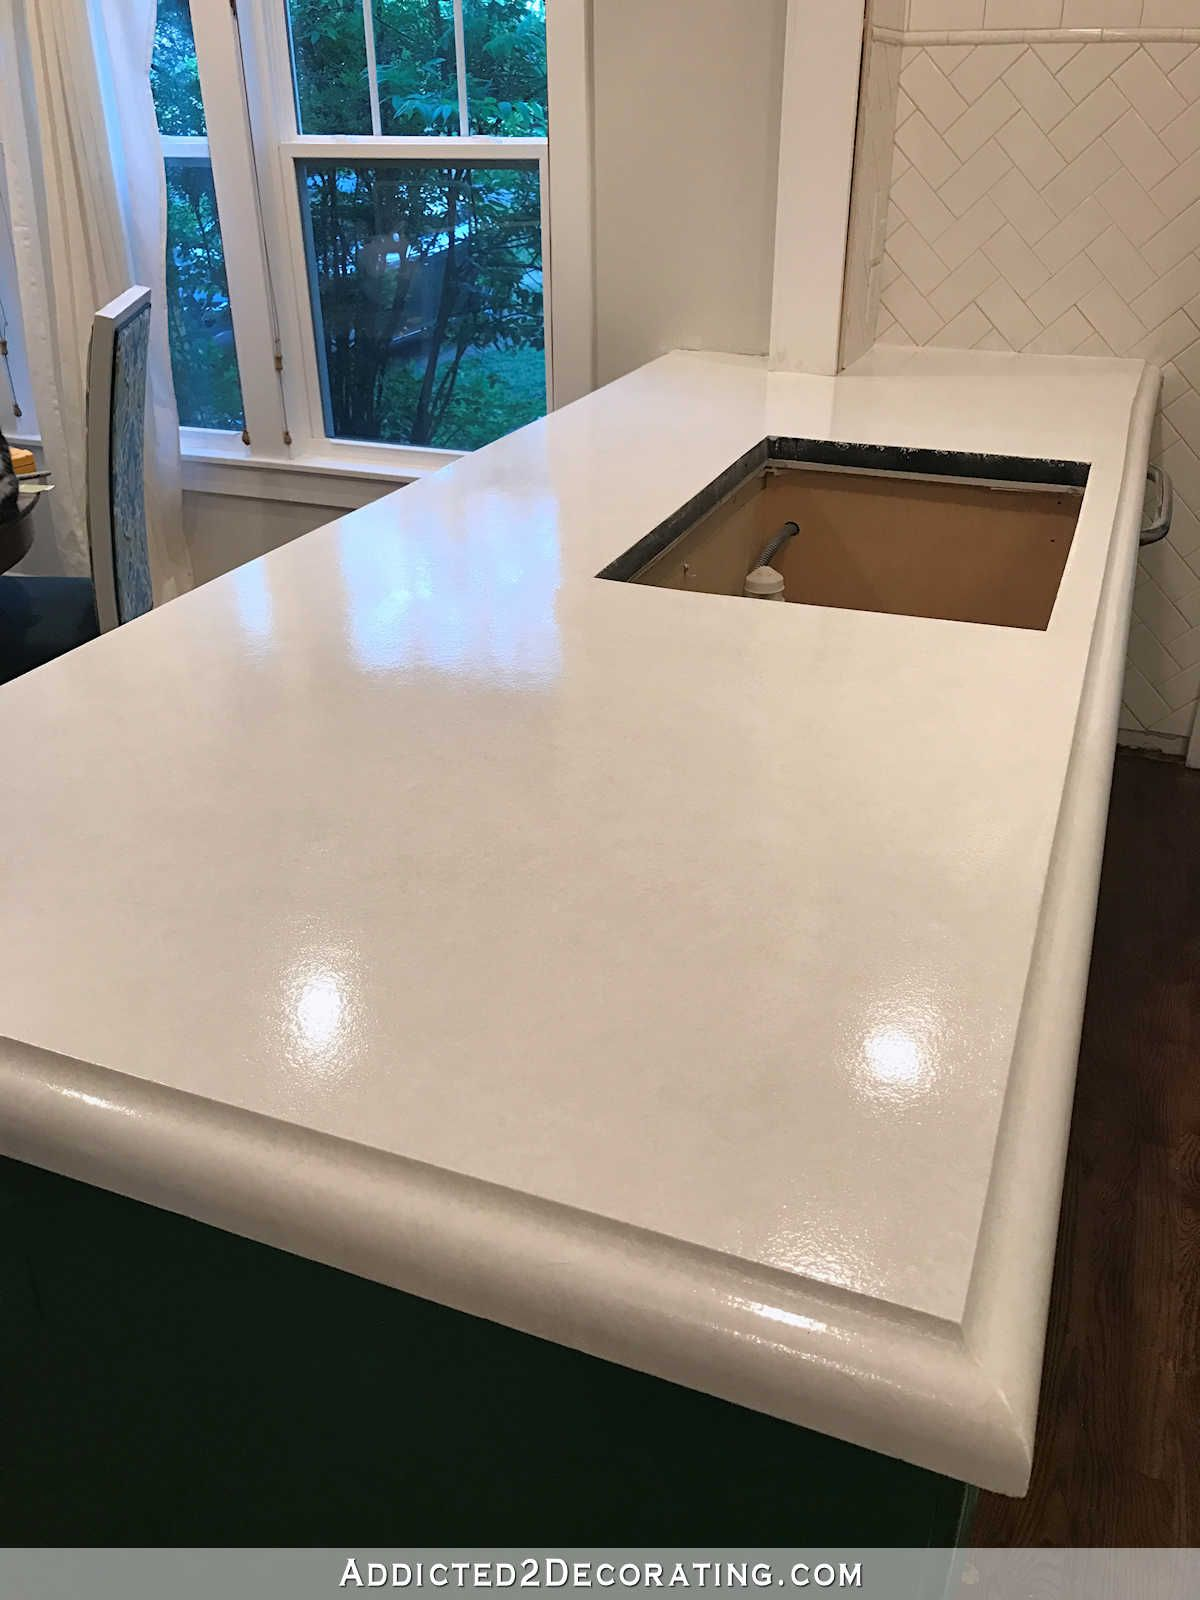 My FINISHED Refinished Concrete Countertops (Top Coated With Polyurea)